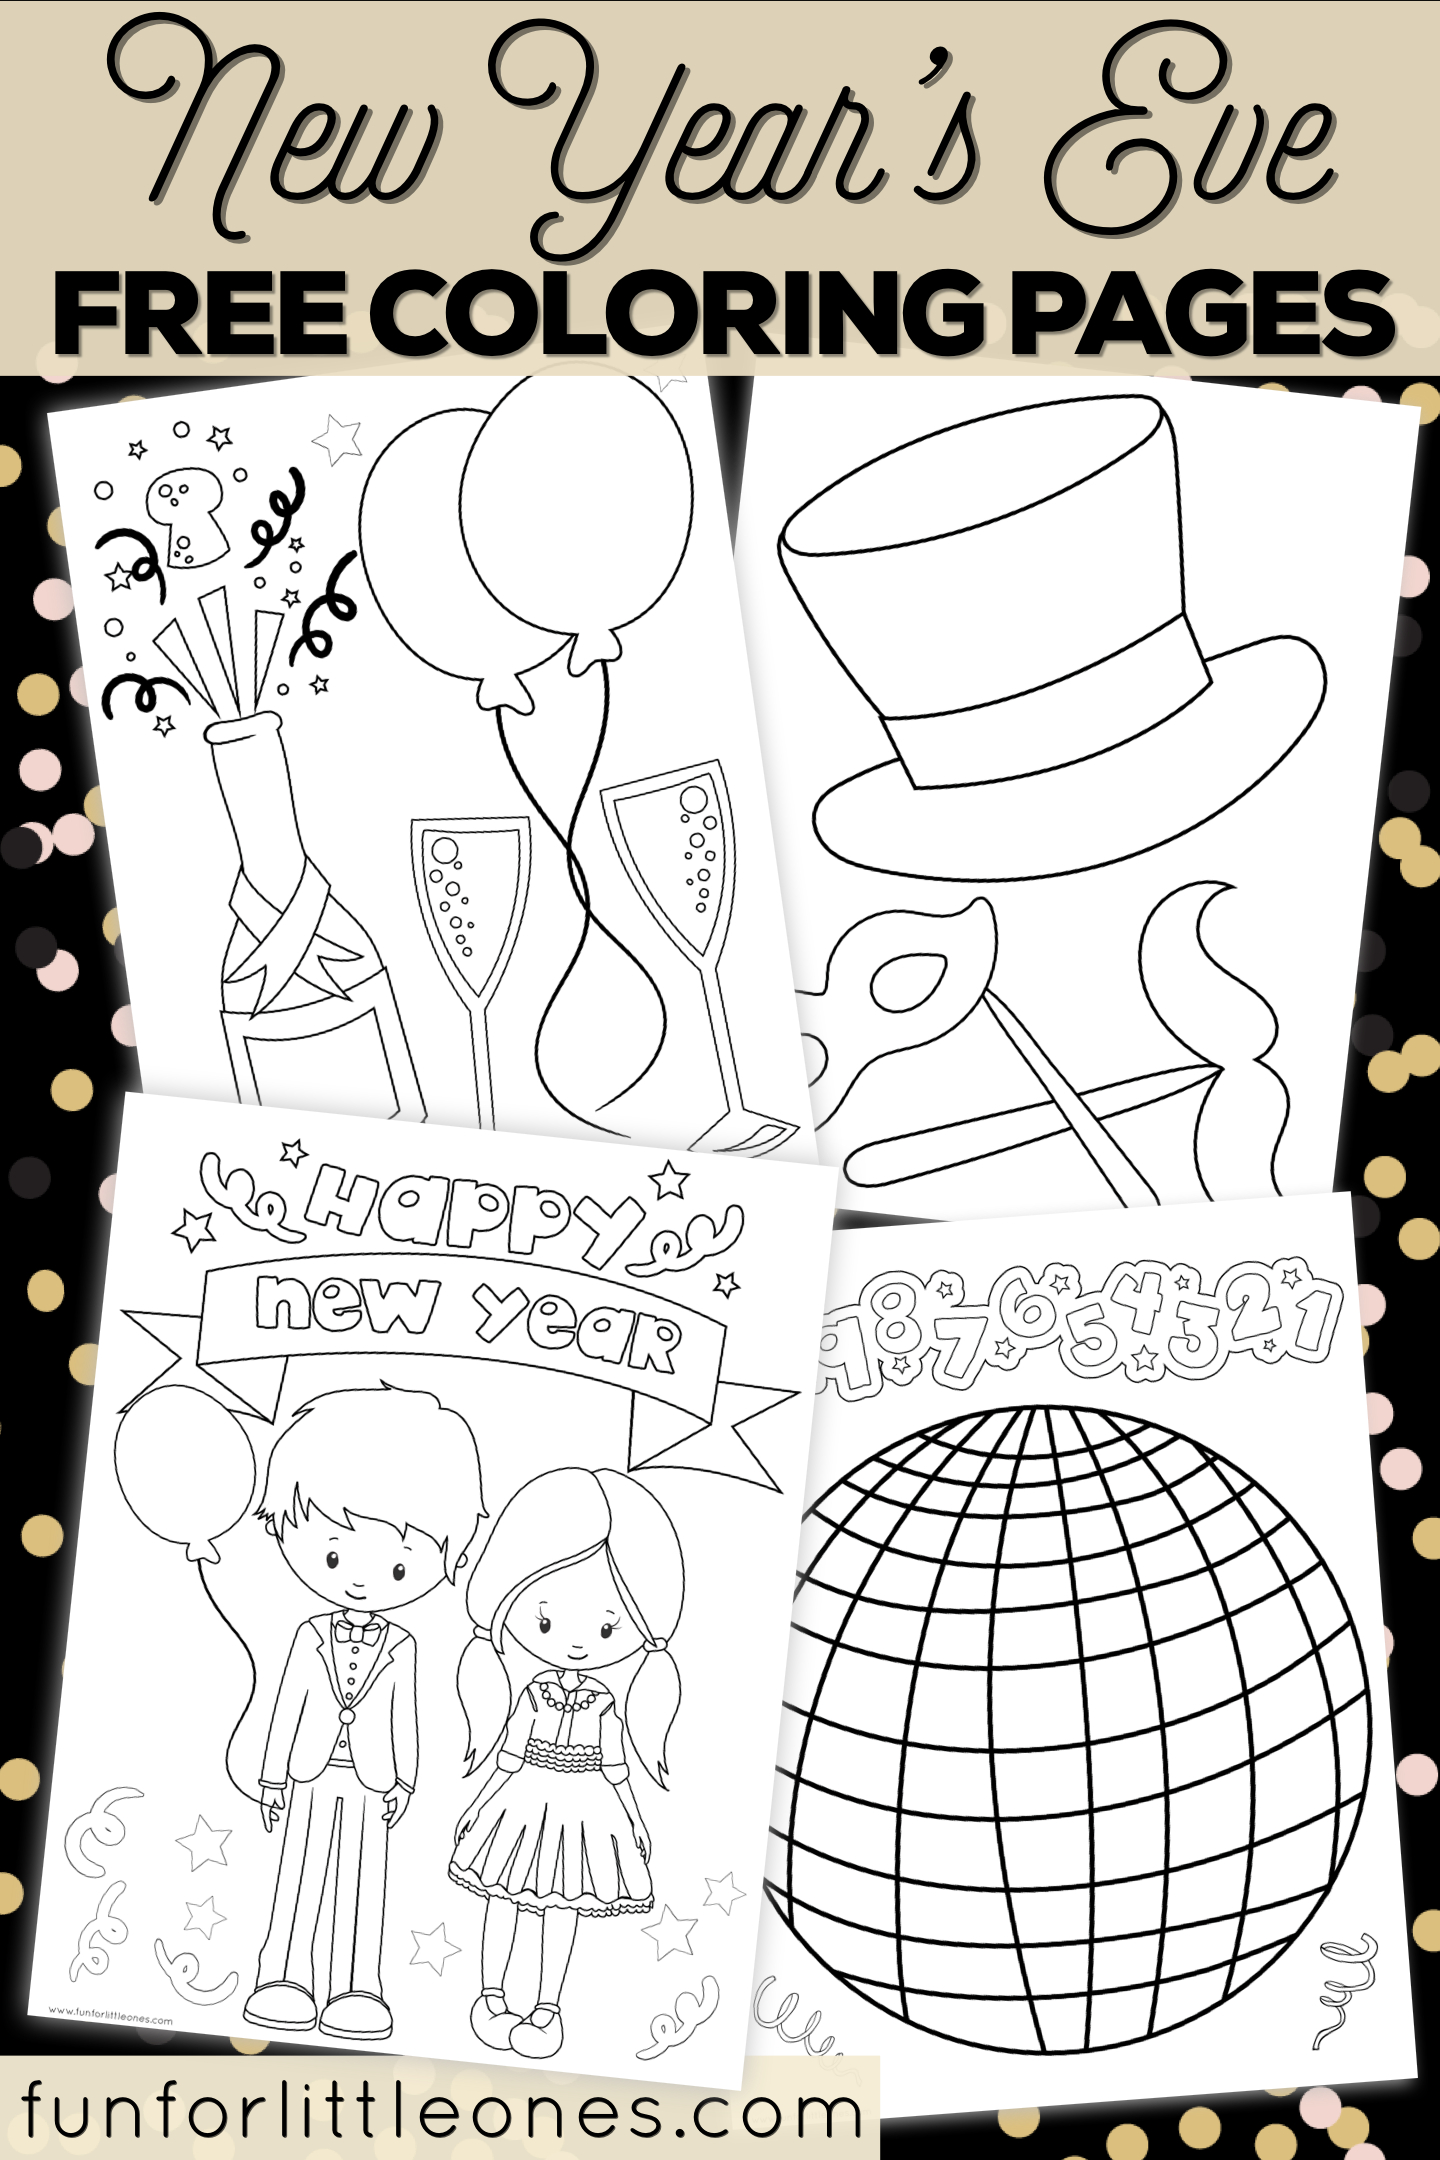 New Year's Eve Coloring Pages For Kids (Free Printable) - New Year Coloring Pages Free Printables